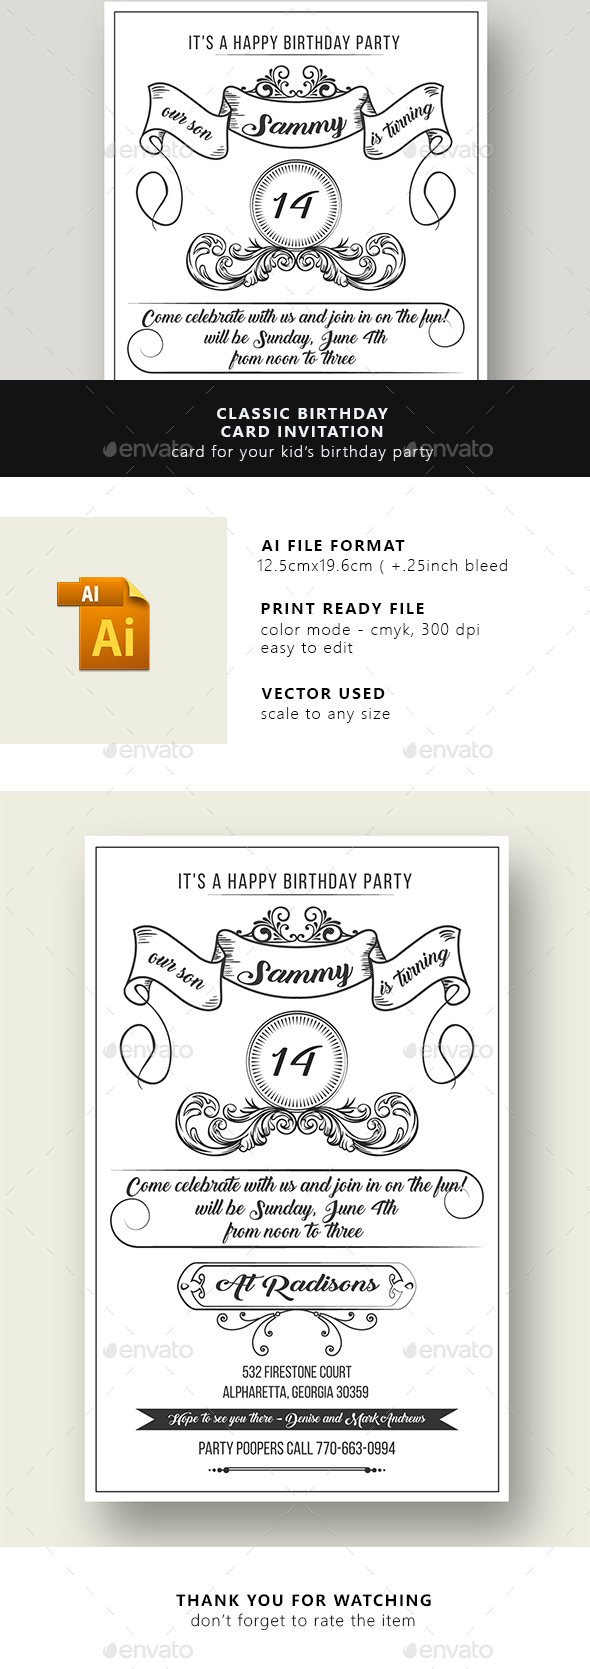 classic birthday invitation cards ; preview